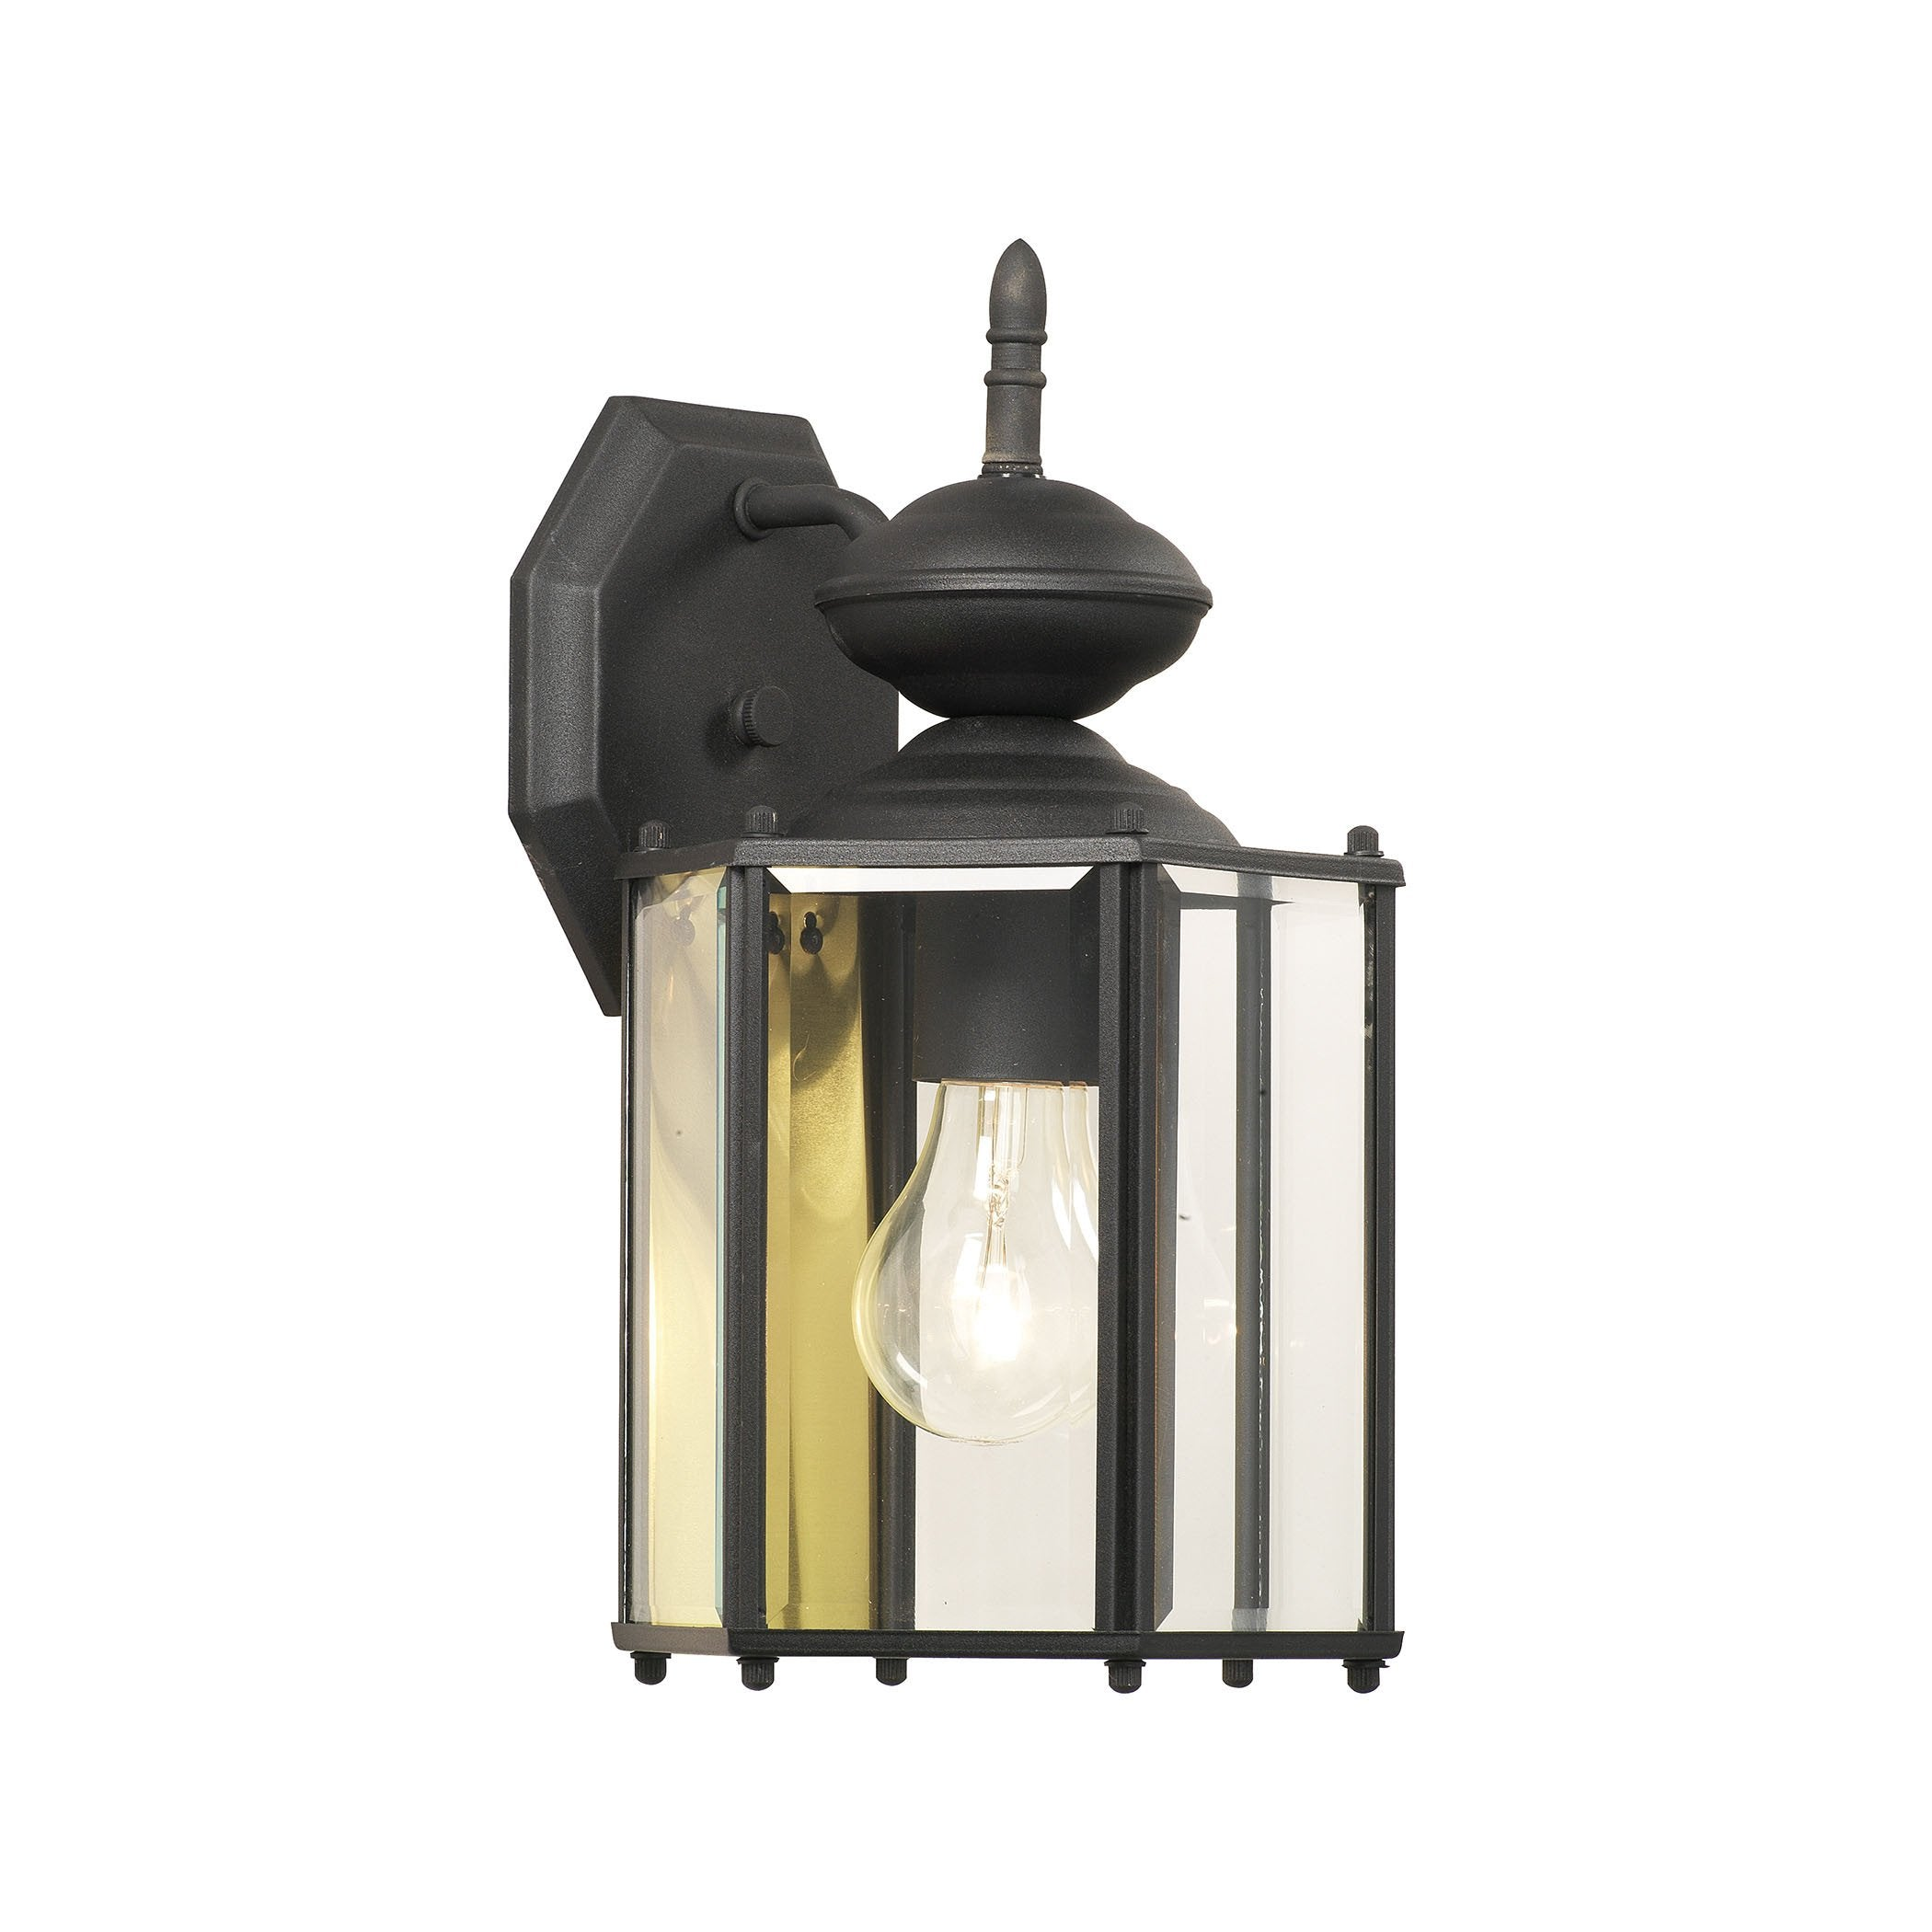 Traditional | Collection | Thomas | Sconce | Finish | Light | Black | Wall